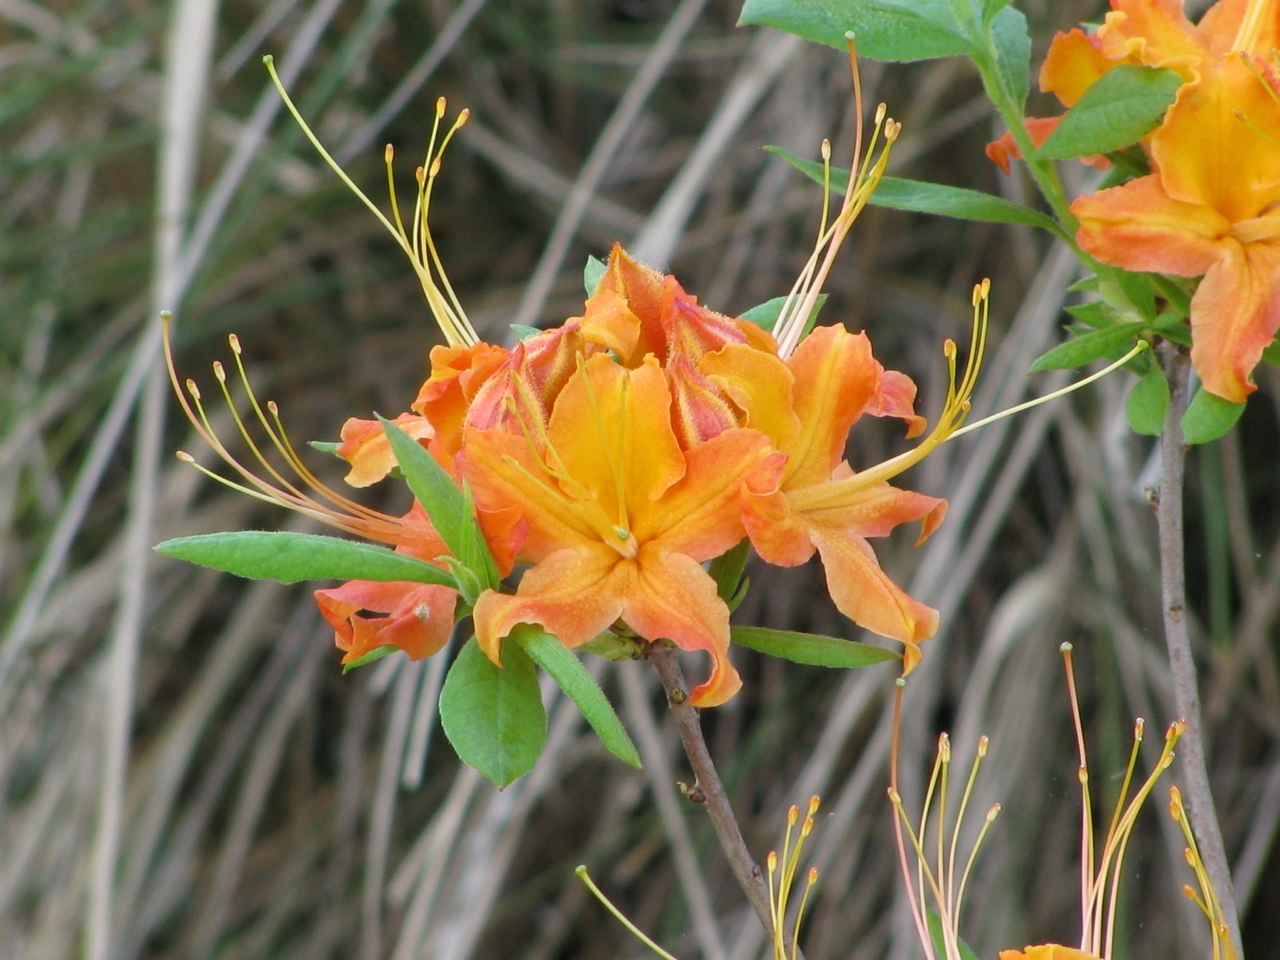 The Scientific Name is Rhododendron calendulaceum. You will likely hear them called Flame Azalea. This picture shows the Flowers opening as new leaves are emerging of Rhododendron calendulaceum